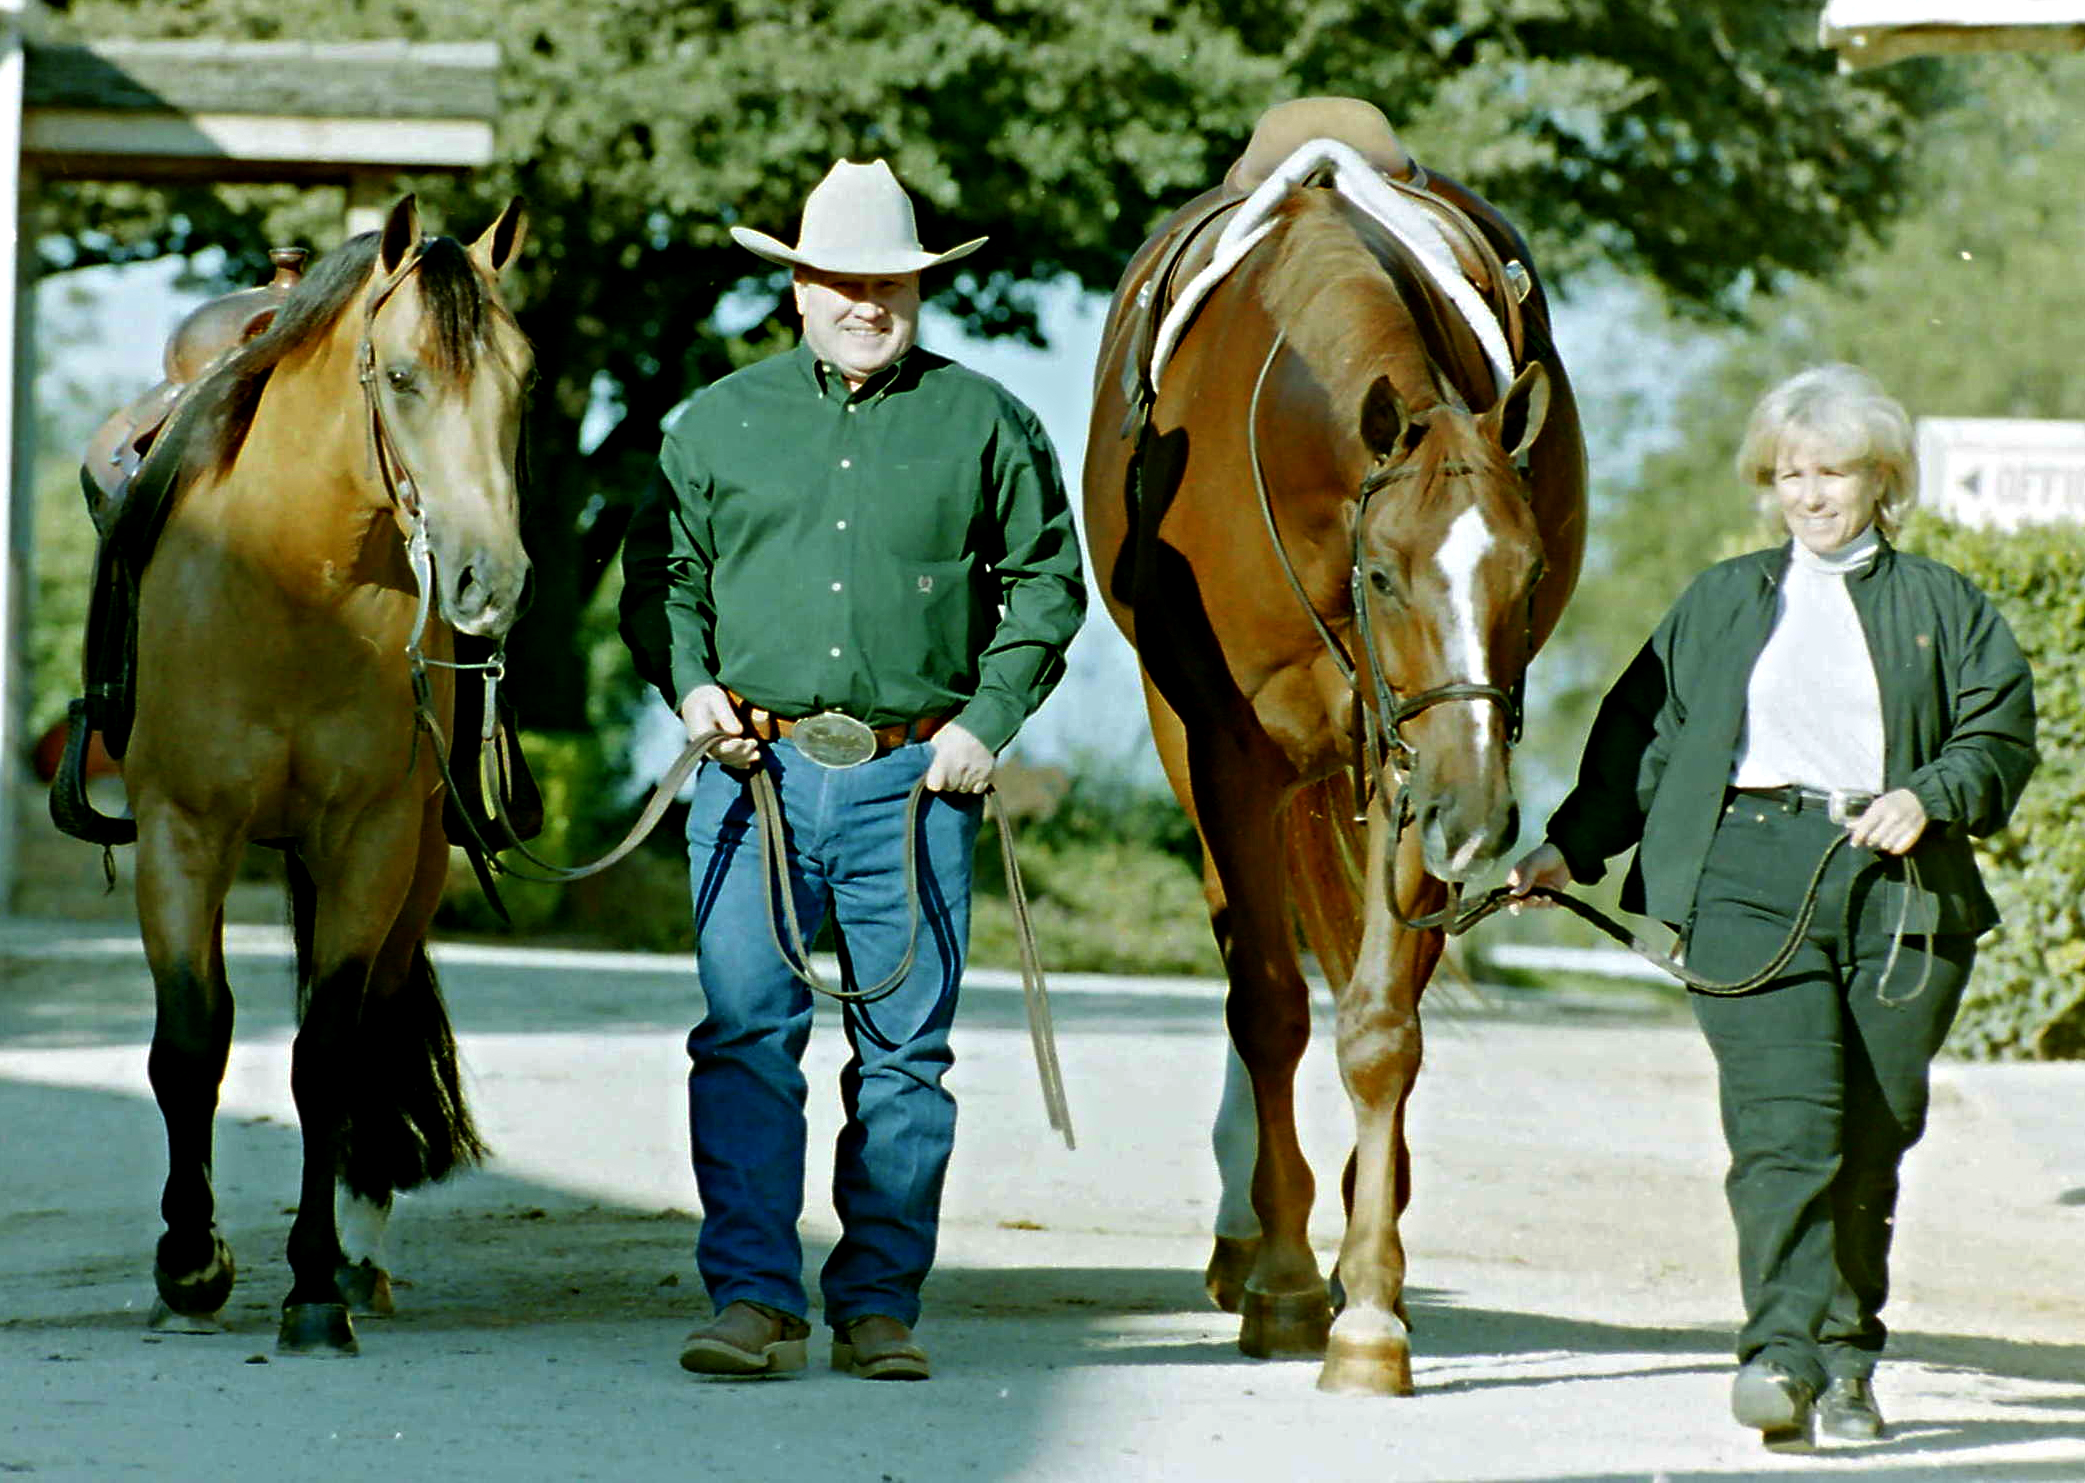 Tim and Colleen at McQuay Stables in Tioga, Texas